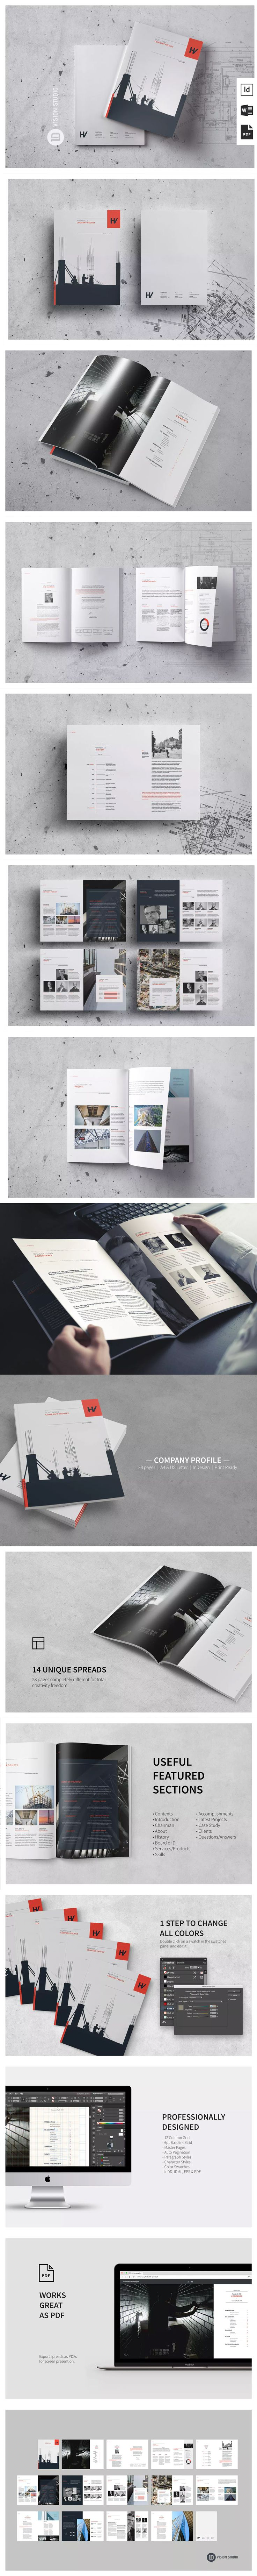 Company Profile Template InDesign INDD  - A4 and US Letter Size